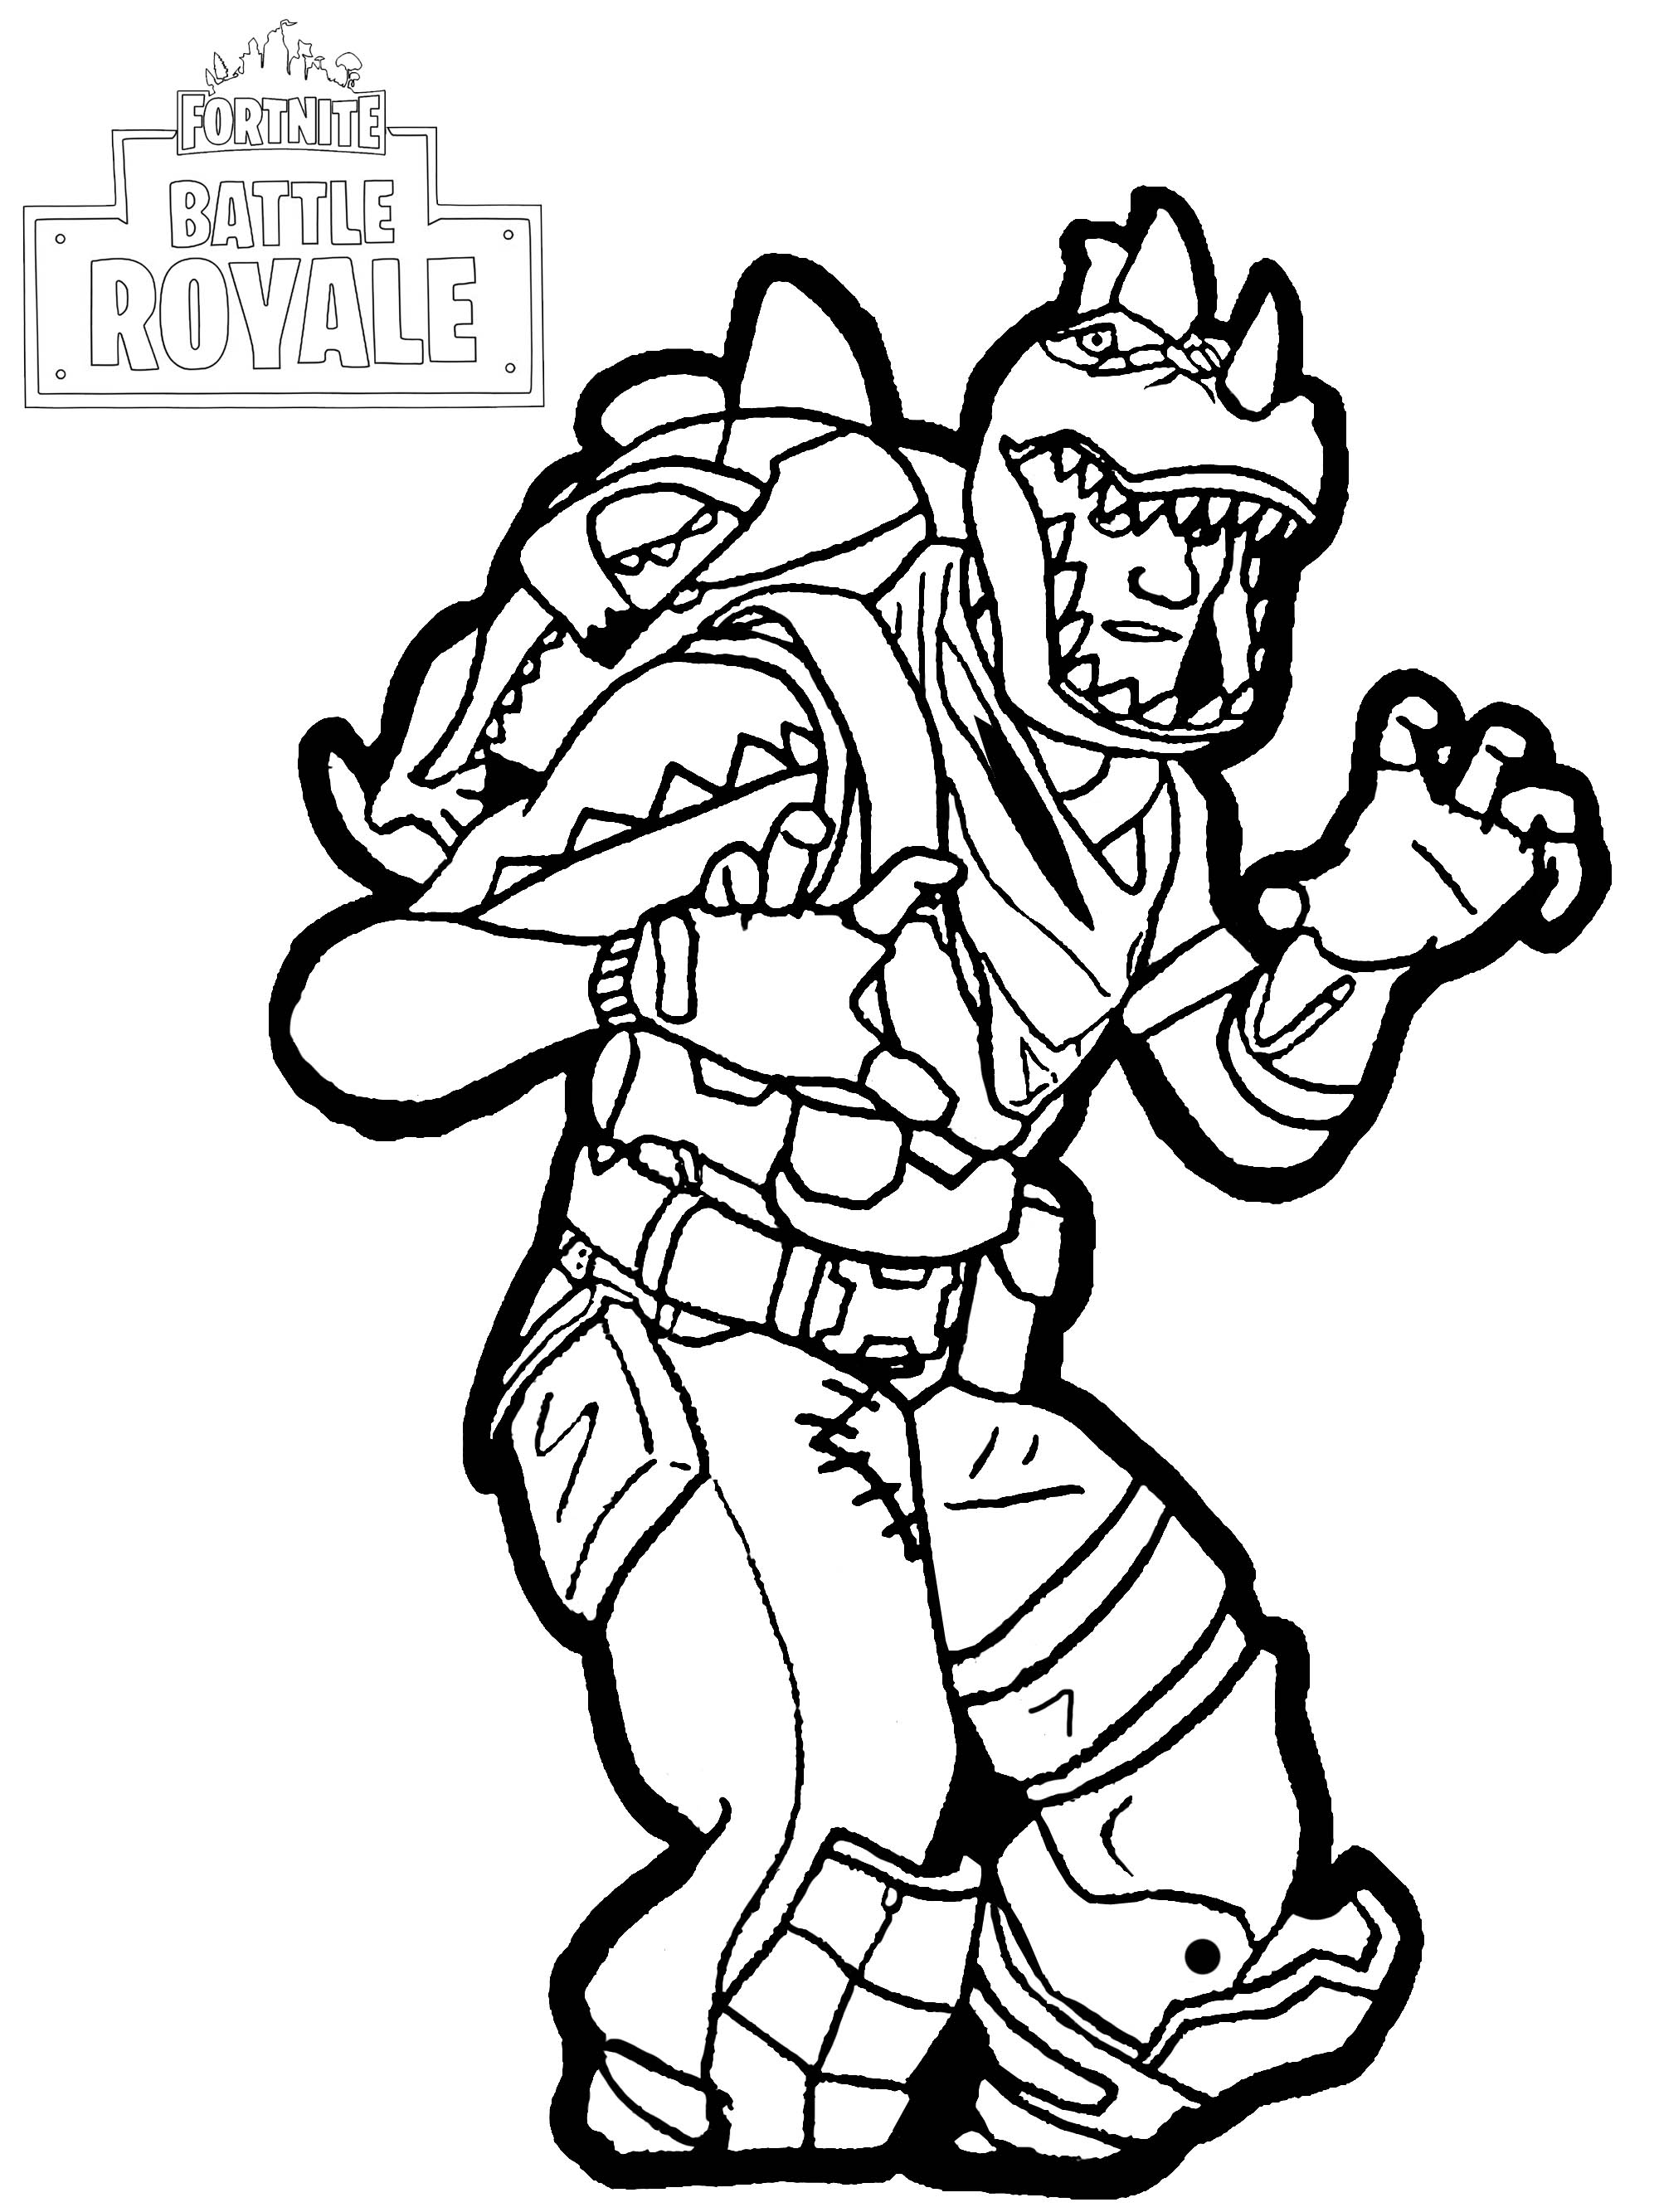 Fortnite Battle Royale Rex Coloriage Fortnite Battle Royale